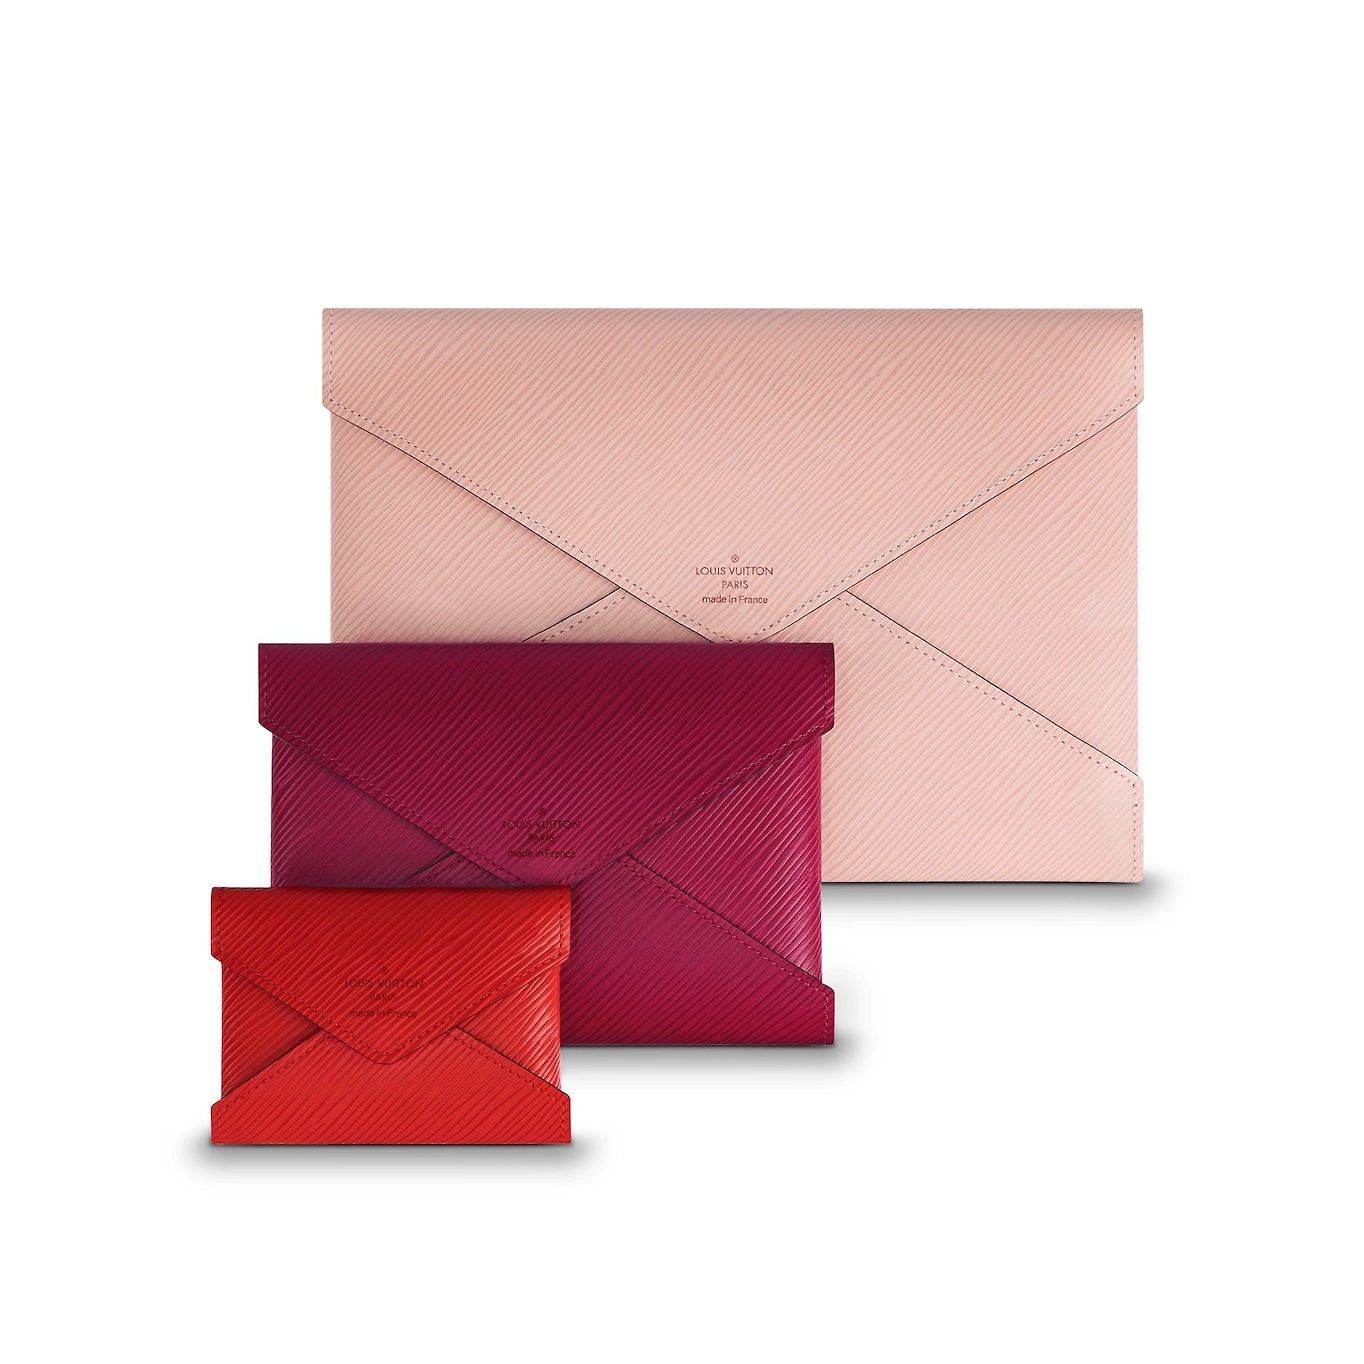 8471accd25 Pochette Kirigami in 2019 | Bags | Louis vuitton official website ...